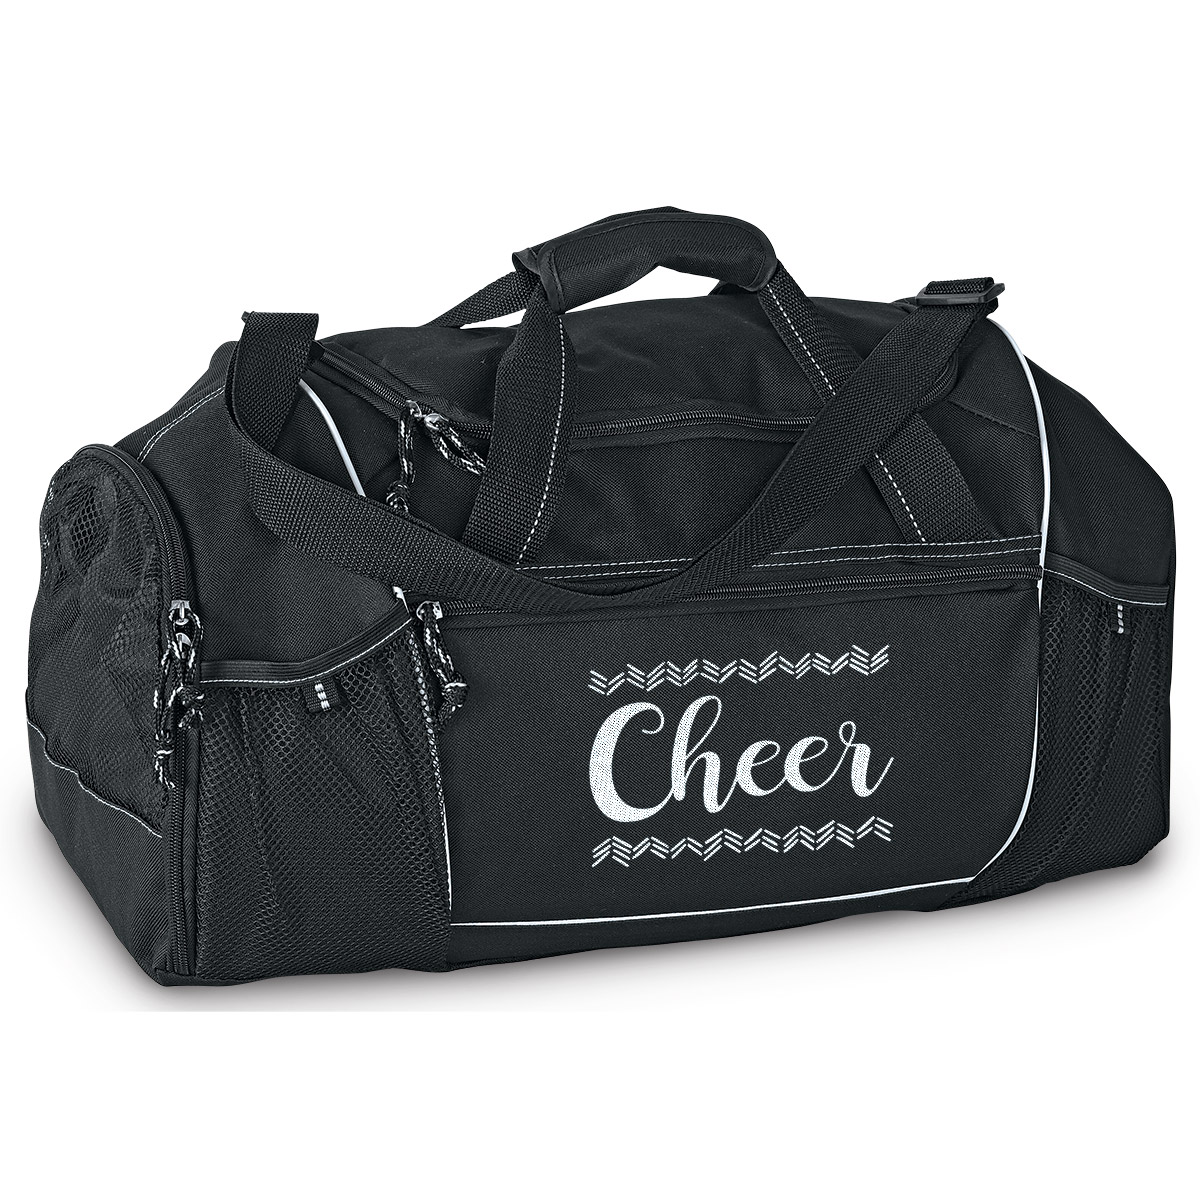 Rhythm Cheer Bag